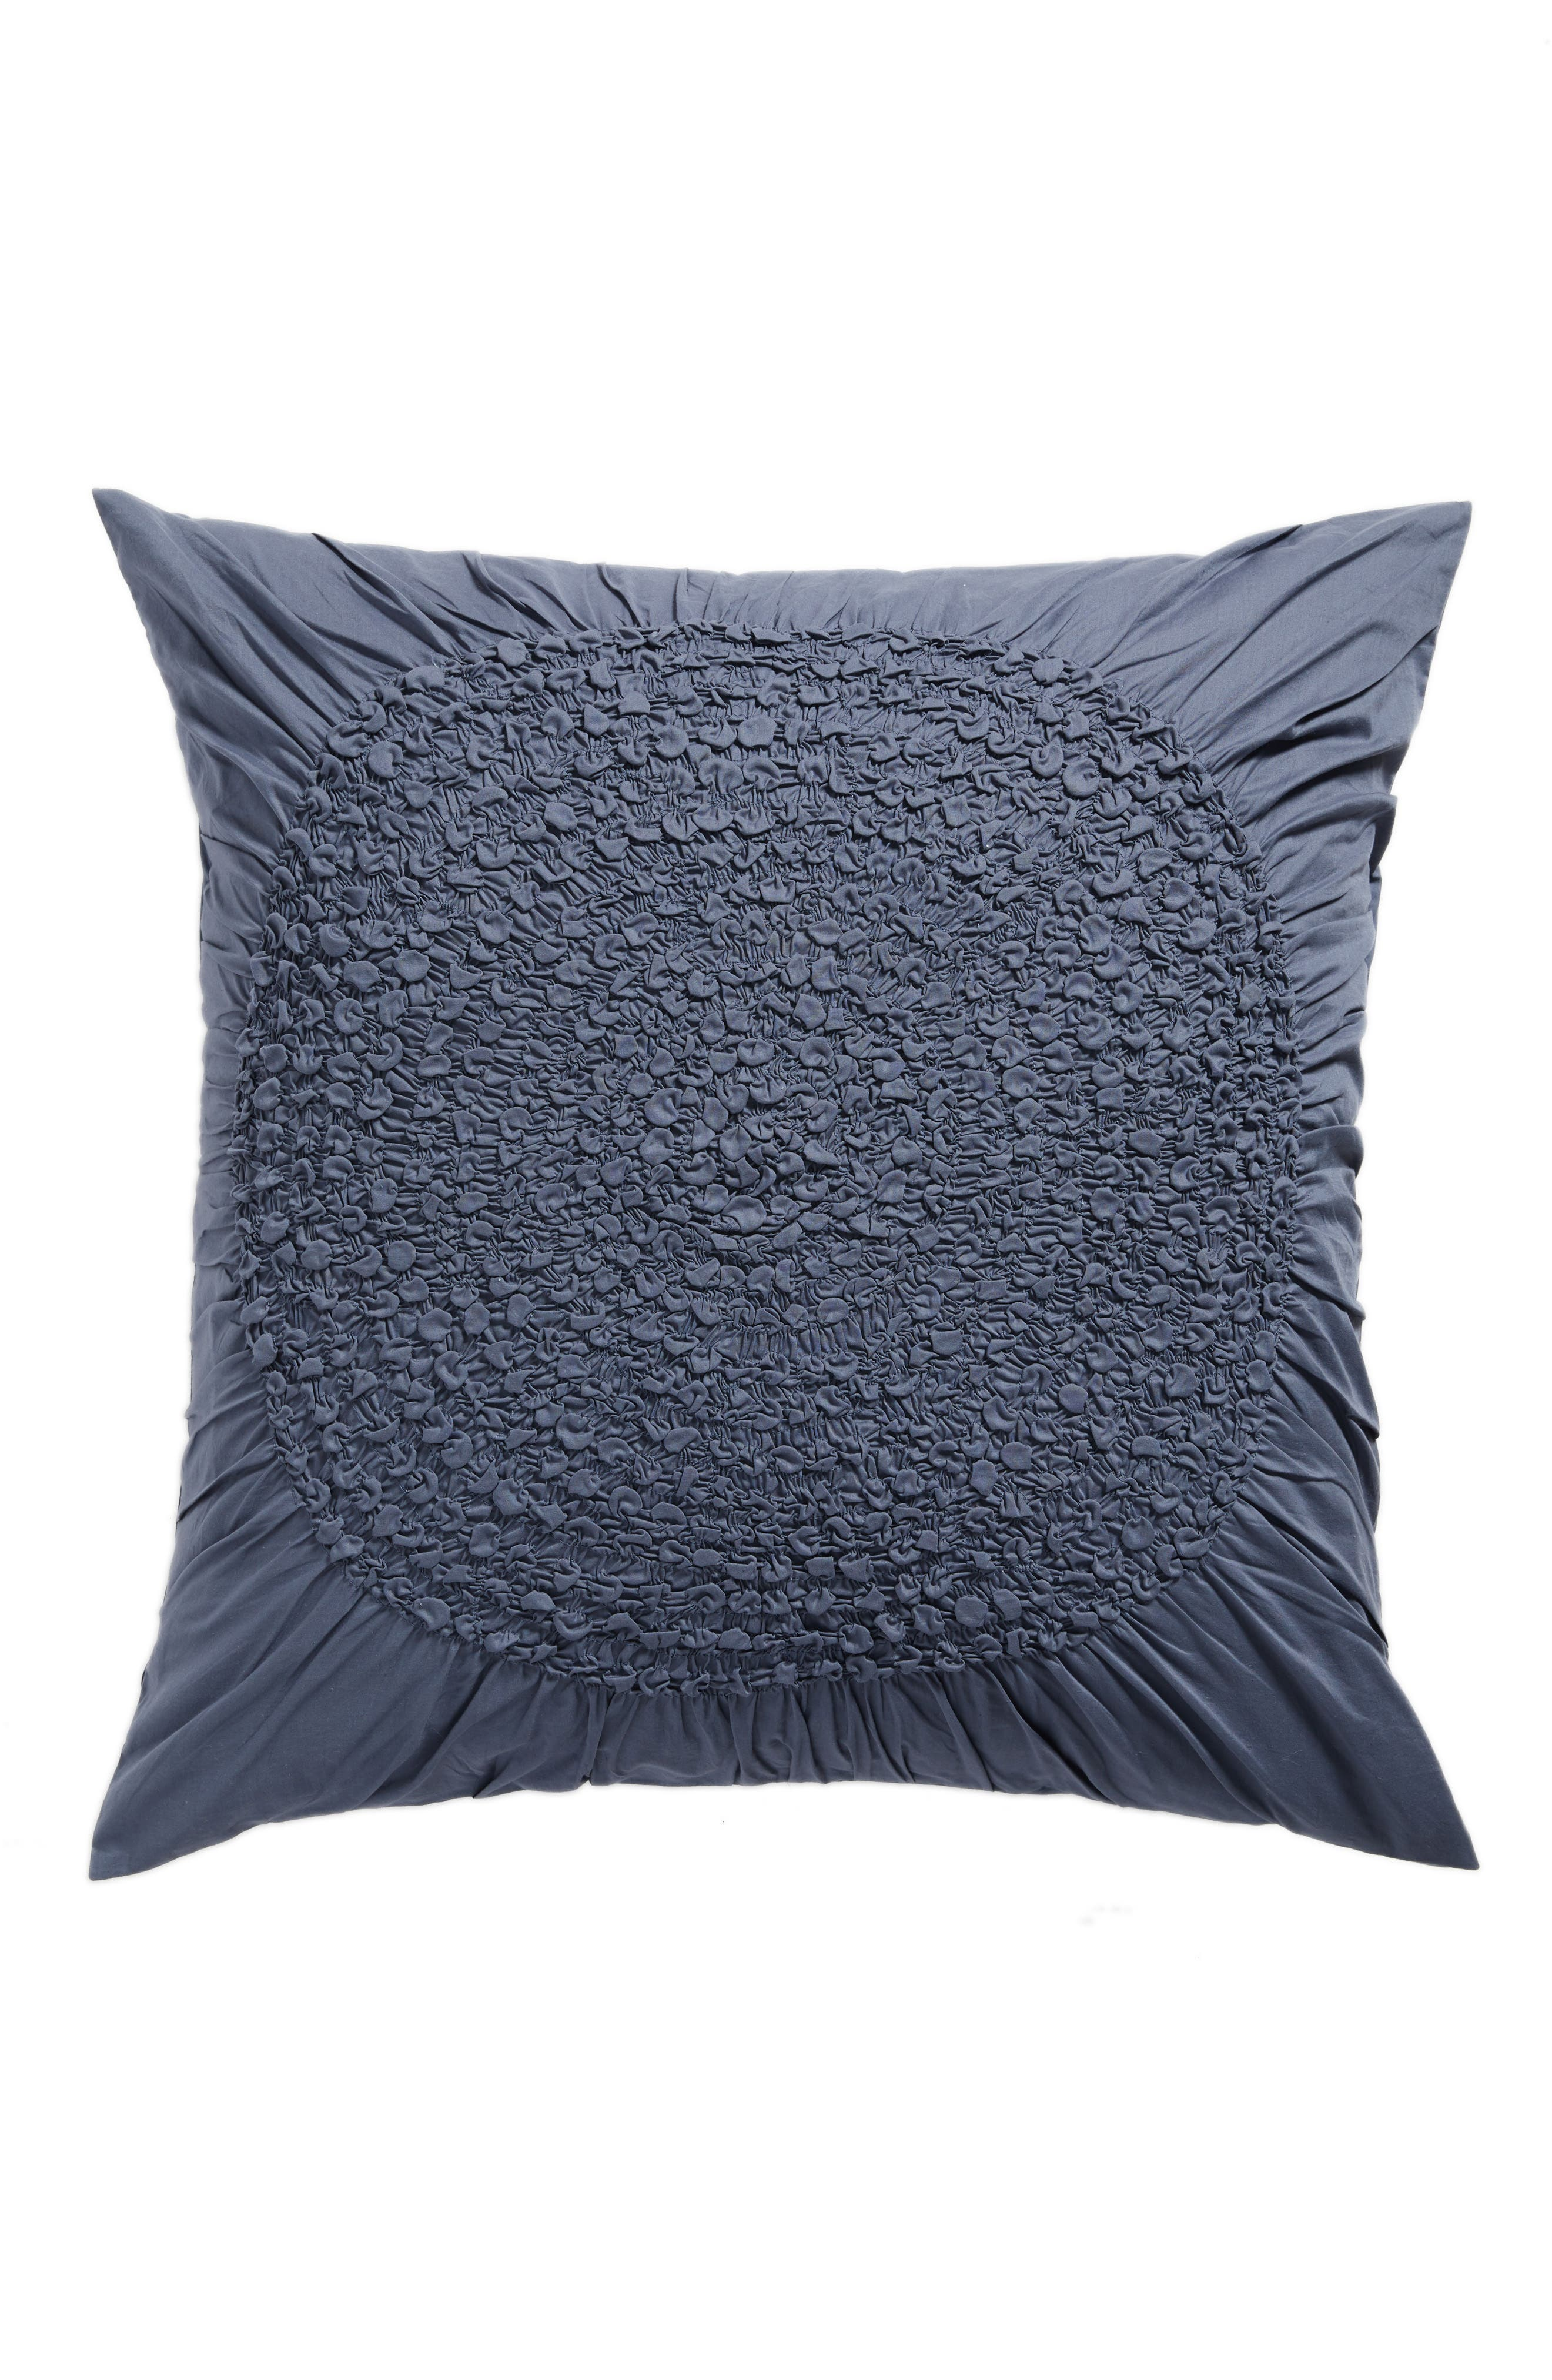 Alternate Image 1 Selected - Nordstrom at Home 'Chloe' Euro Sham